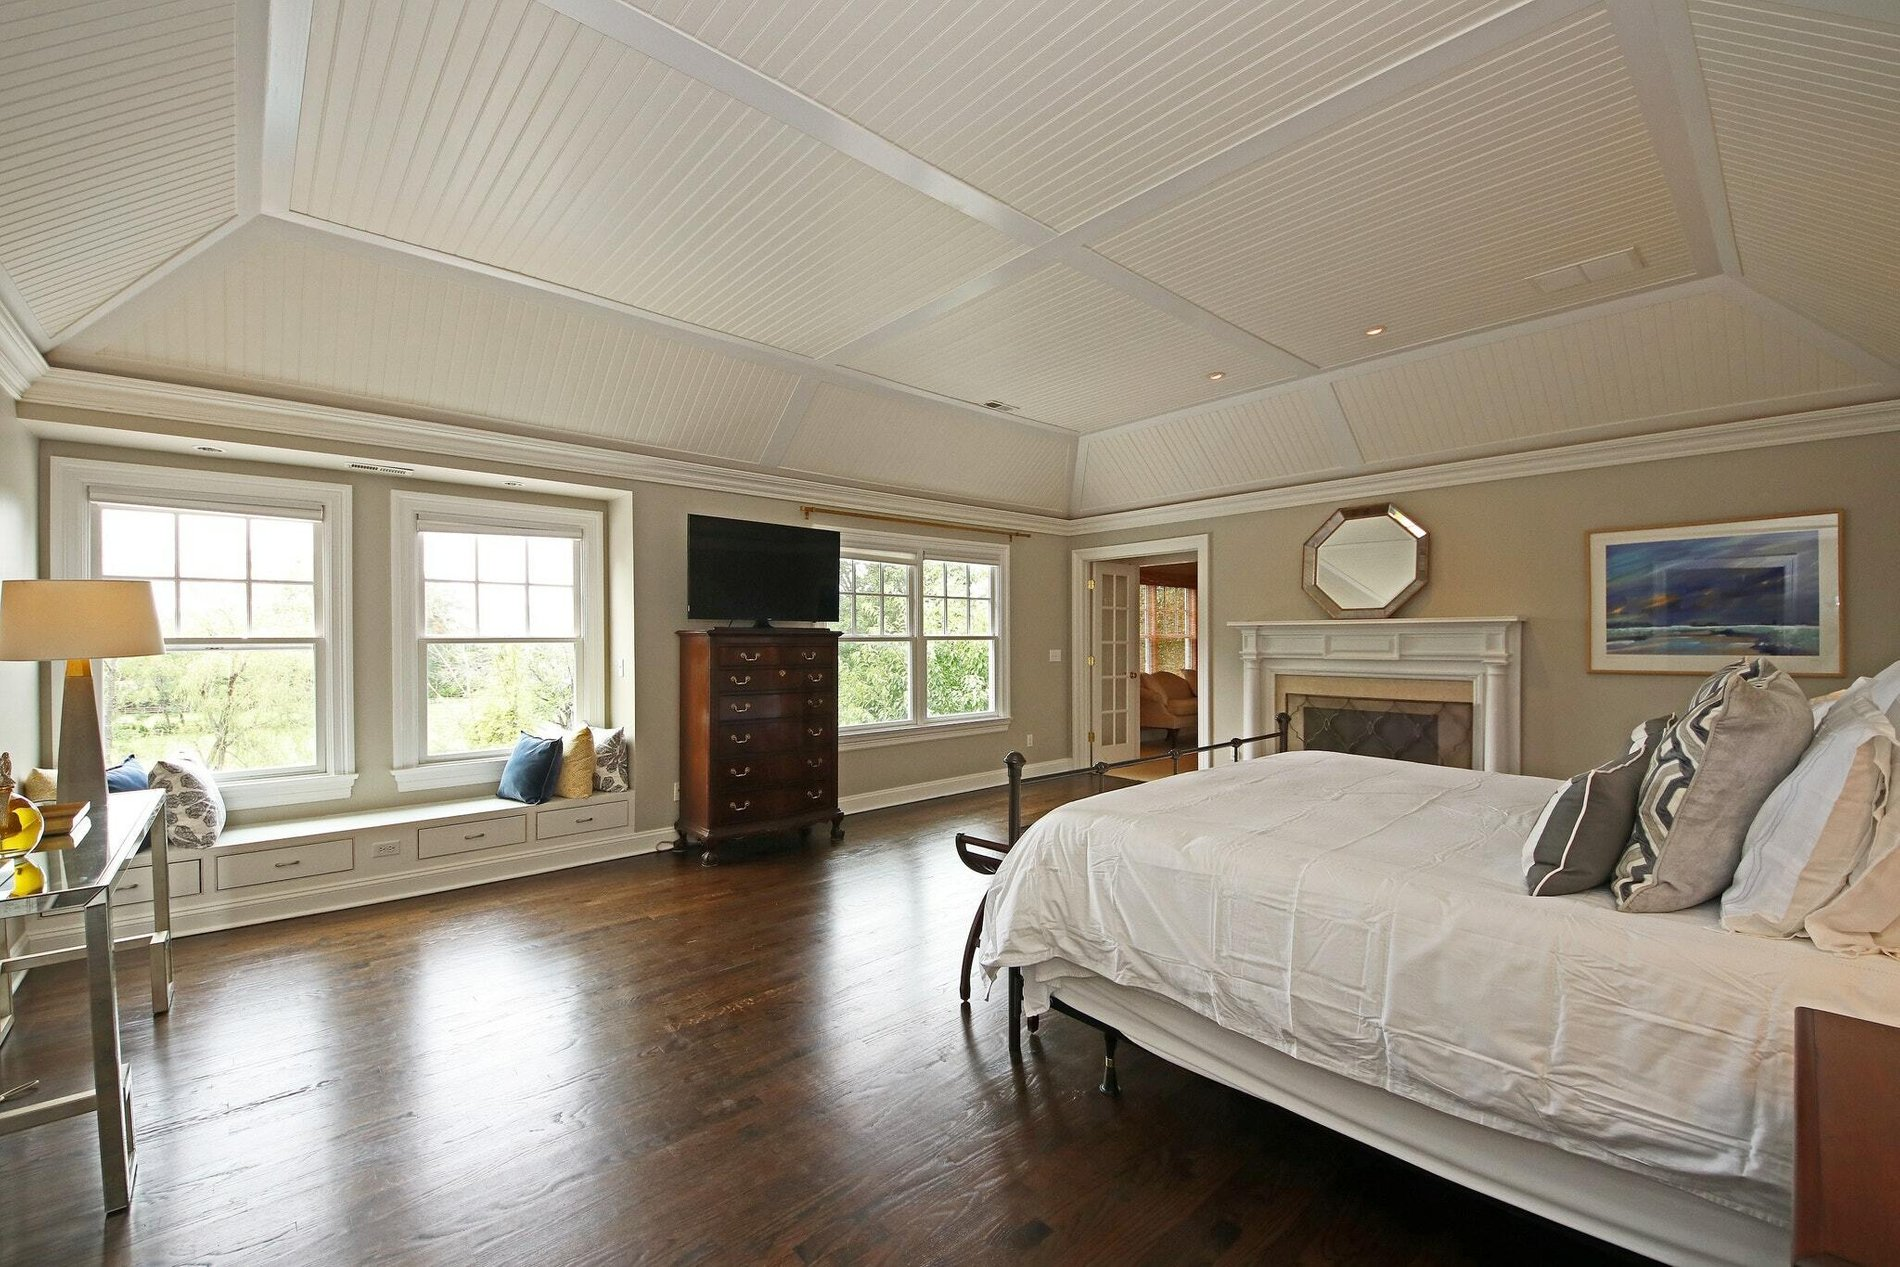 Large master bedroom with a cream colored window seat above built in drawers.